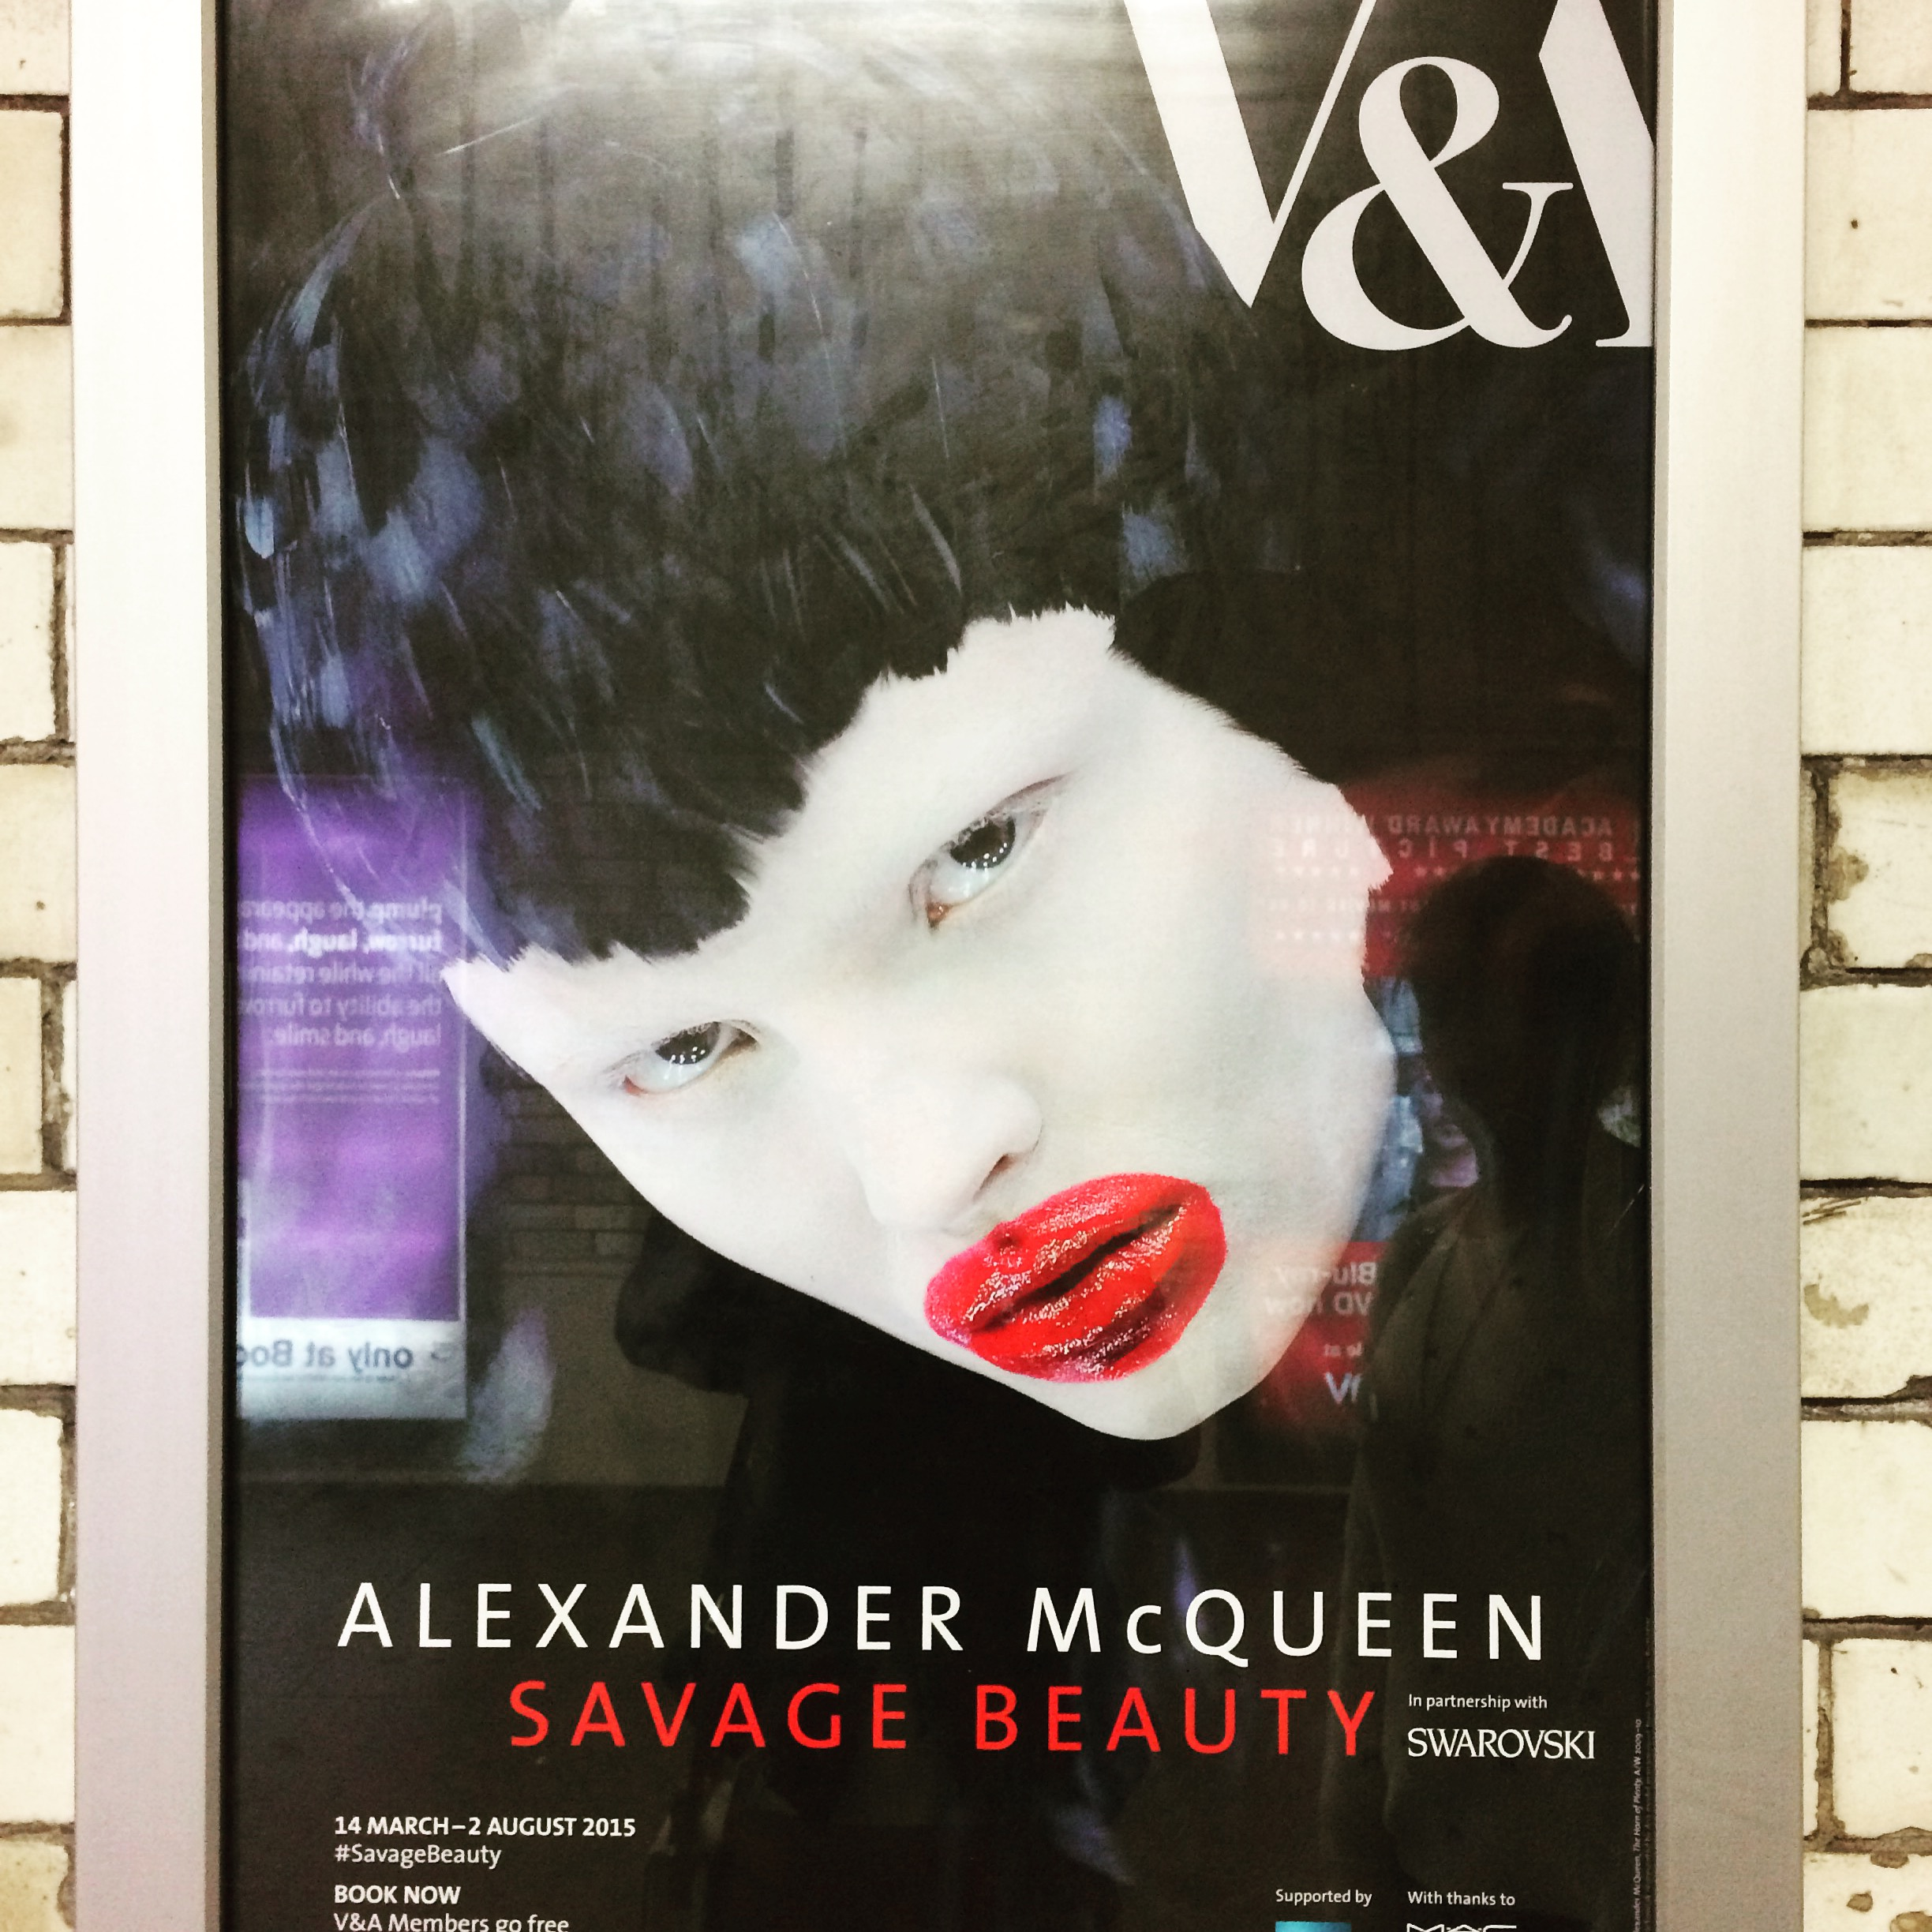 alexander-mcqueen-savage-beauty exhibit 3f07faa1c38